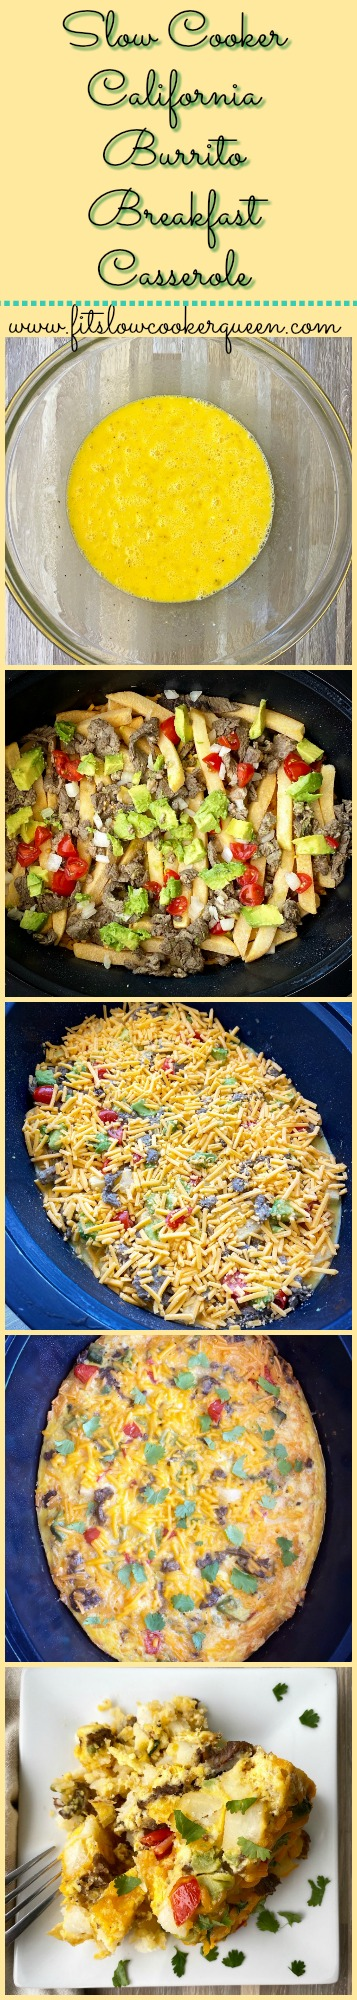 another pinterest pin for Slow Cooker California Burrito Breakfast Casserole